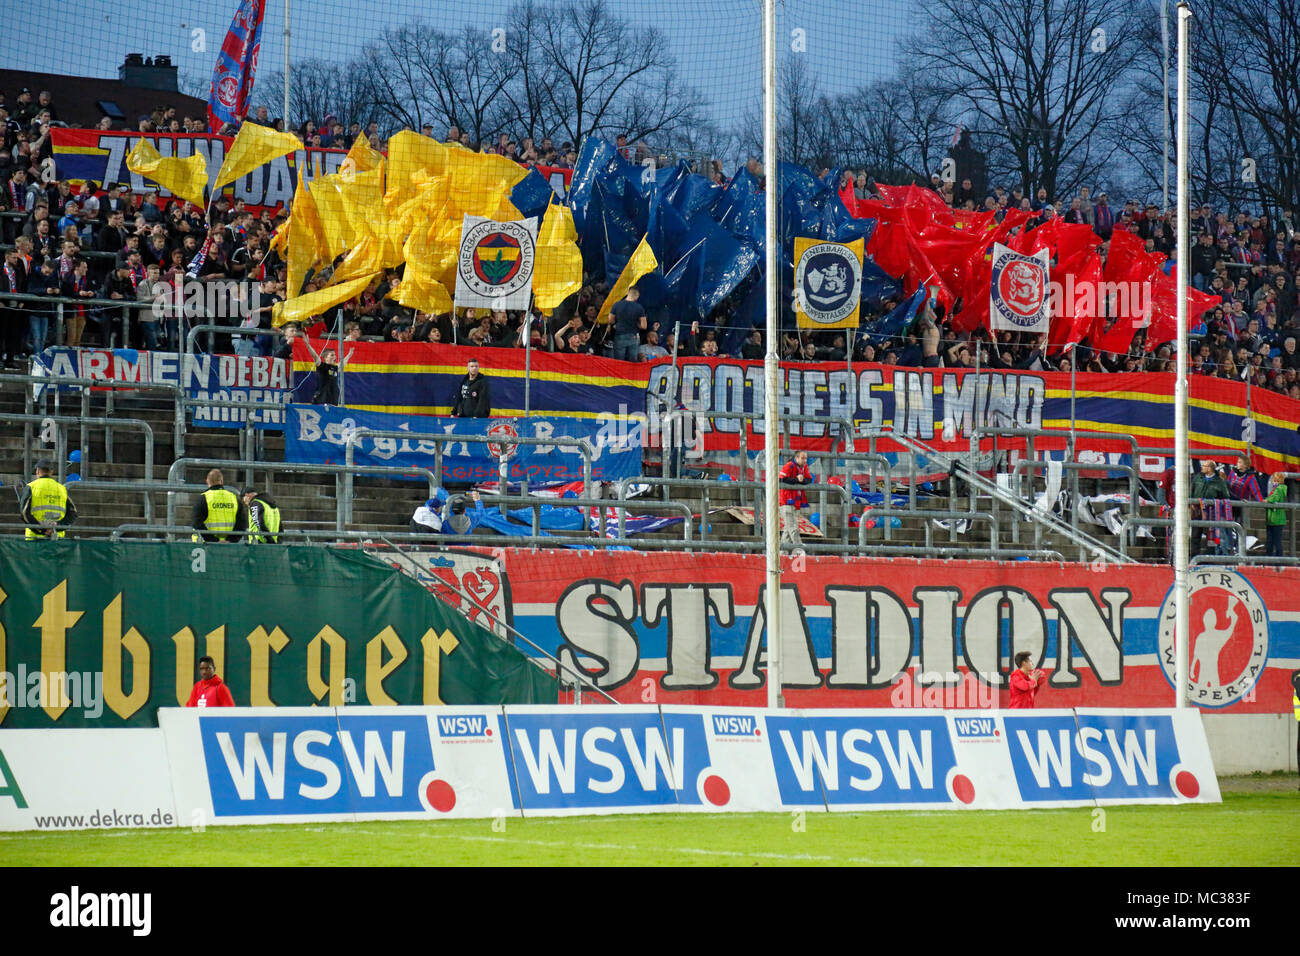 sports, football, Regional League West, 2017/2018, Wuppertaler SV vs Rot Weiss Essen 3:1, choreography of the Wuppertal football fans - Stock Image